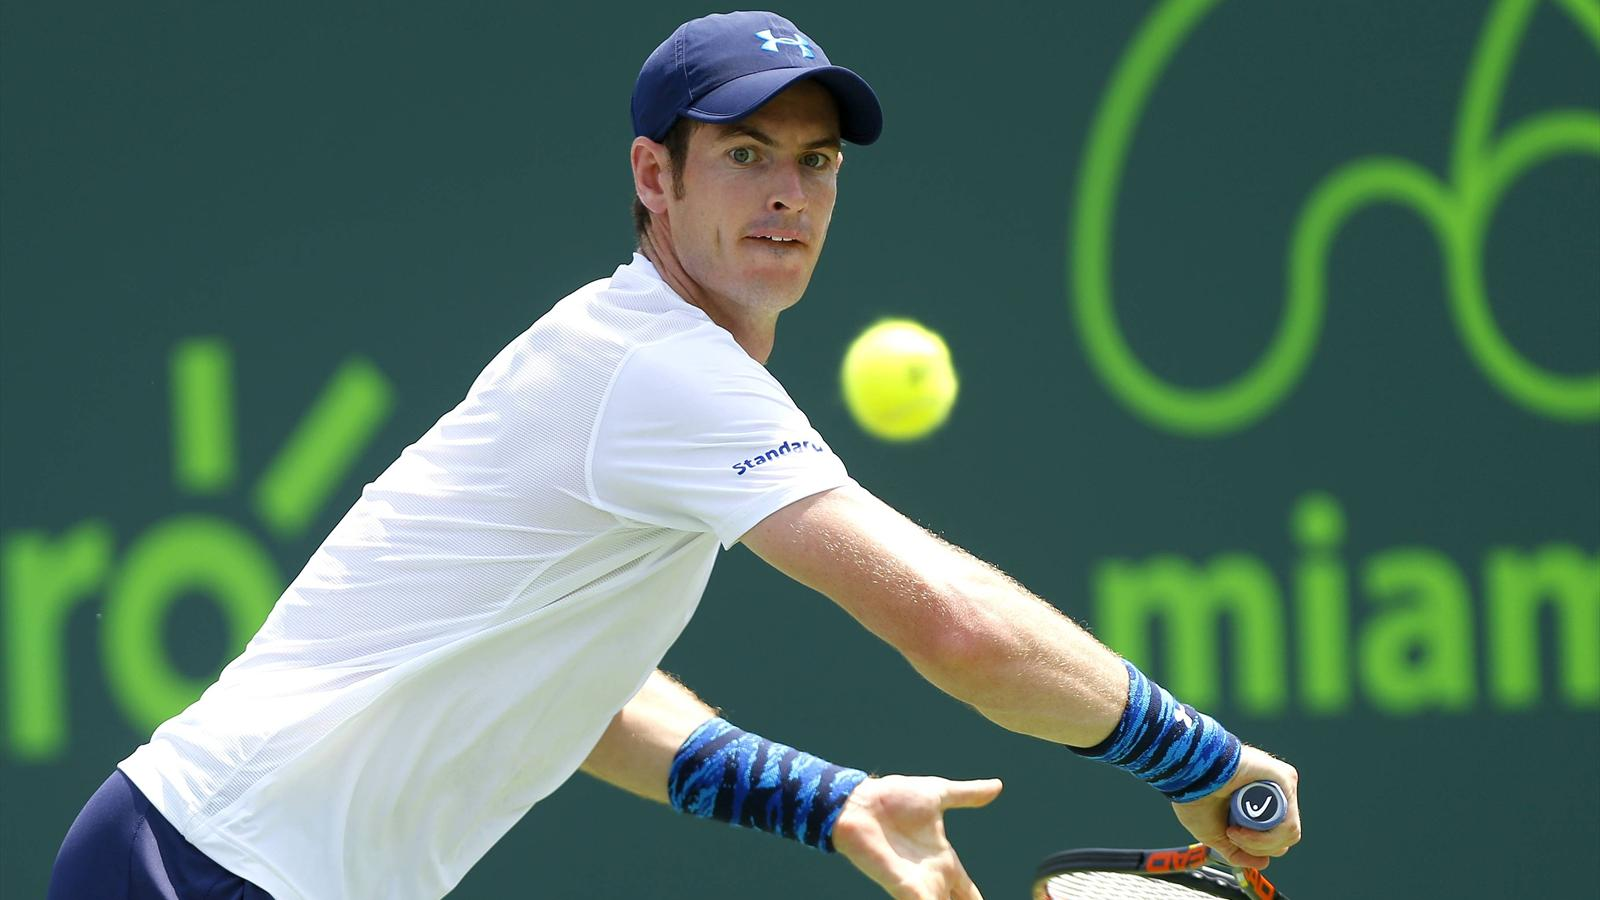 Andy Murray overcomes wobble to win at Miami Masters - Tennis - Eurosport